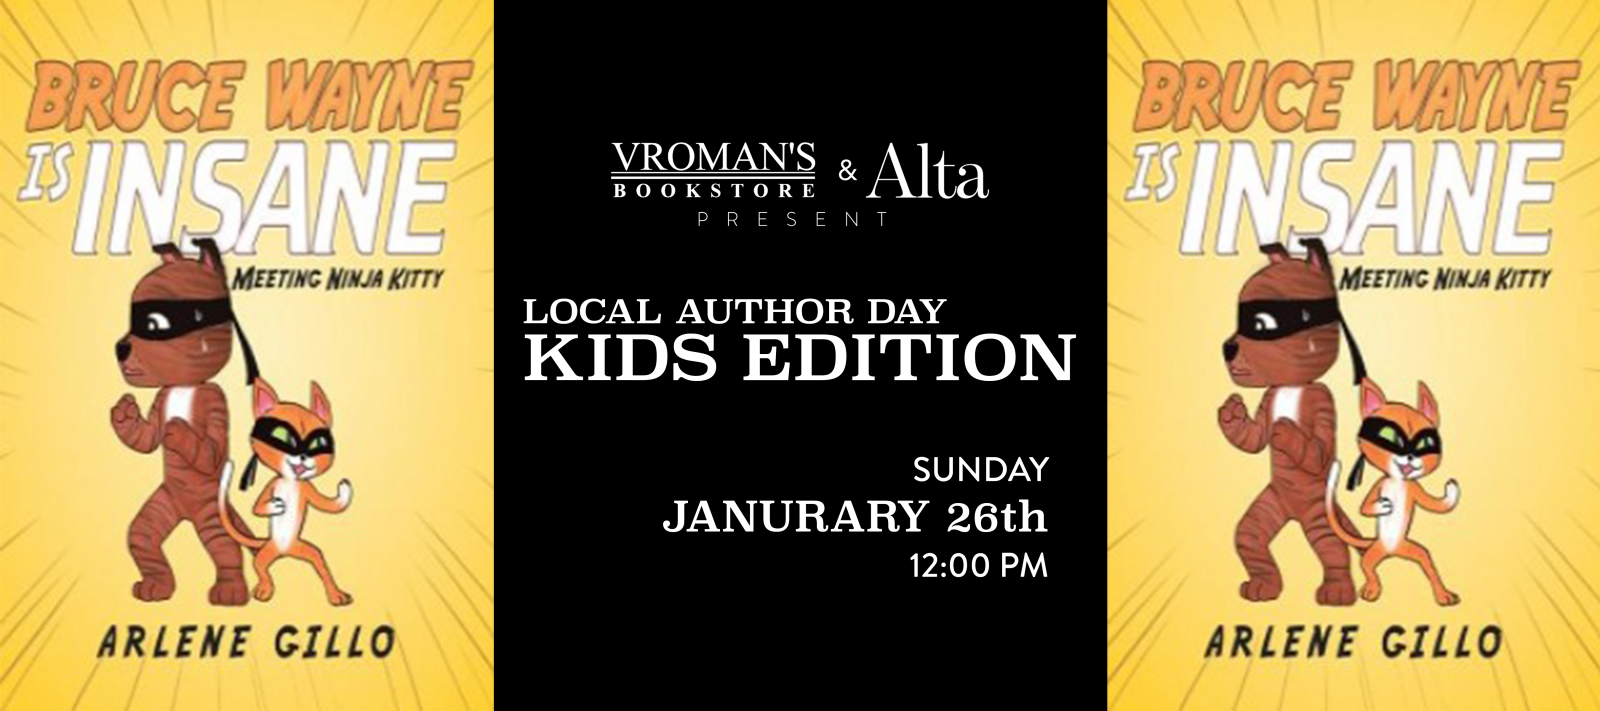 Vroman's Local Author Day – Kids Edition featuring Arlene Gillo on Sunday January 26th at 12pm